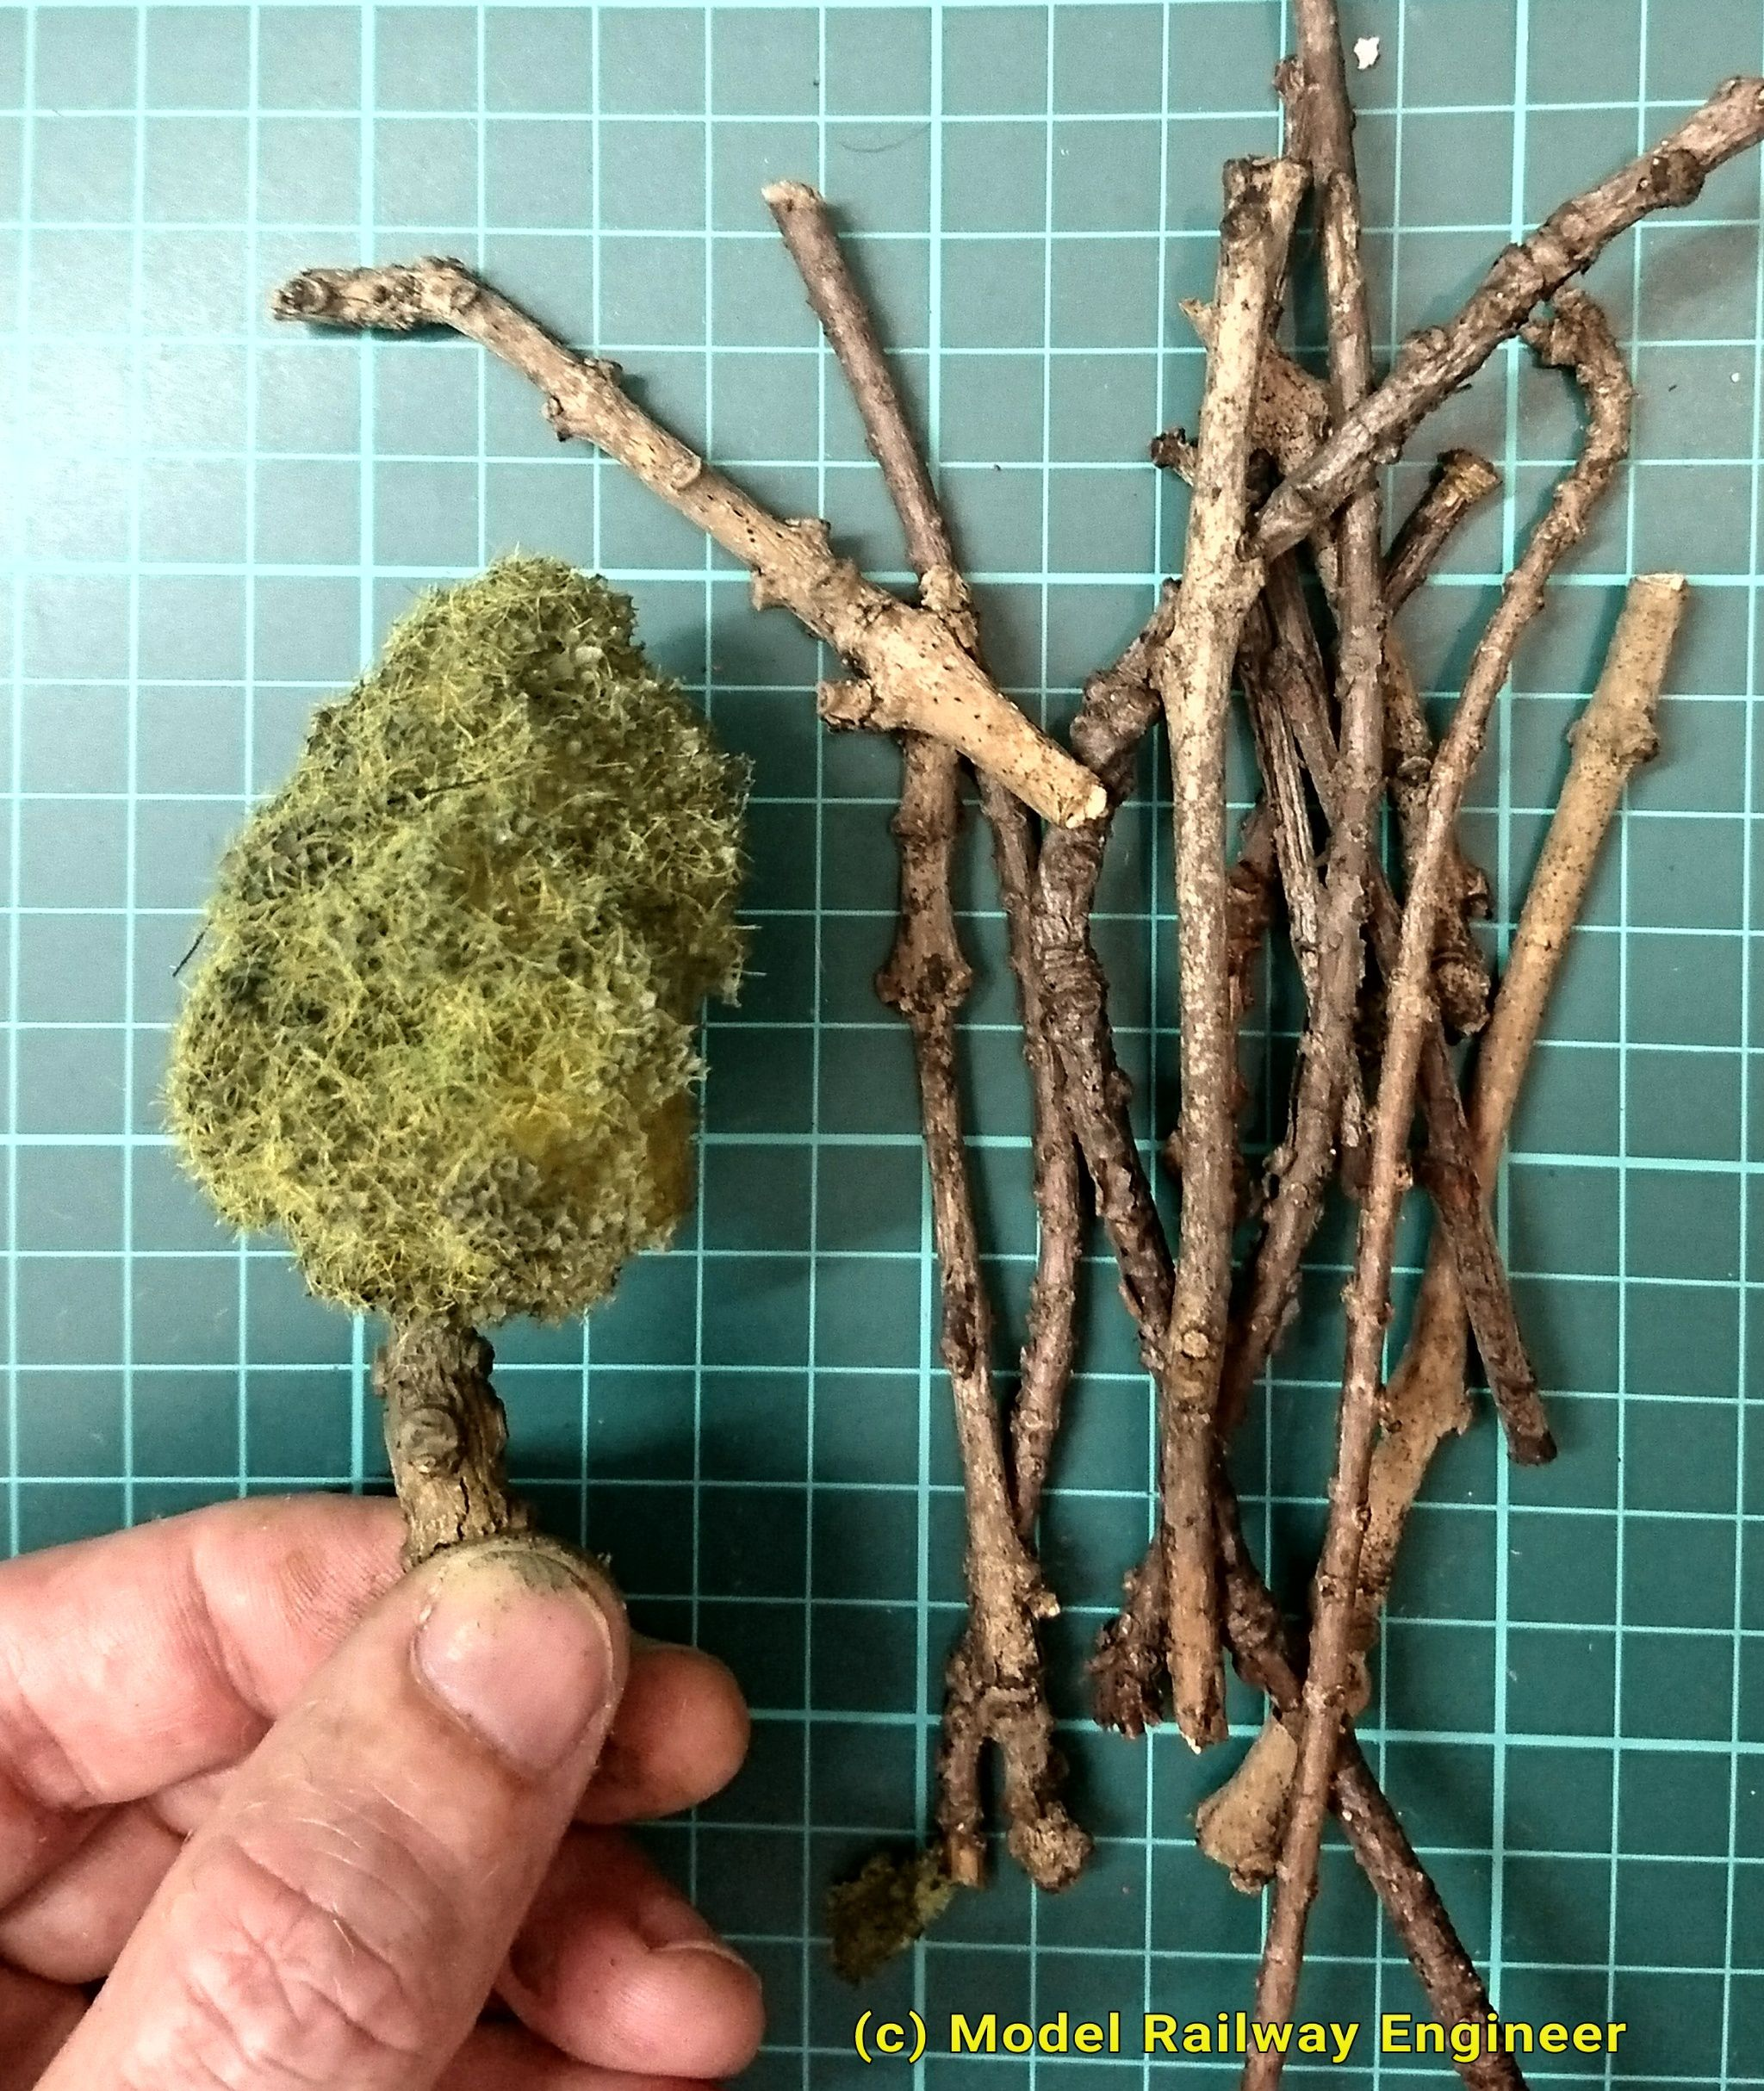 The Cheapest Technique For Making Model Trees – They Look Great Too